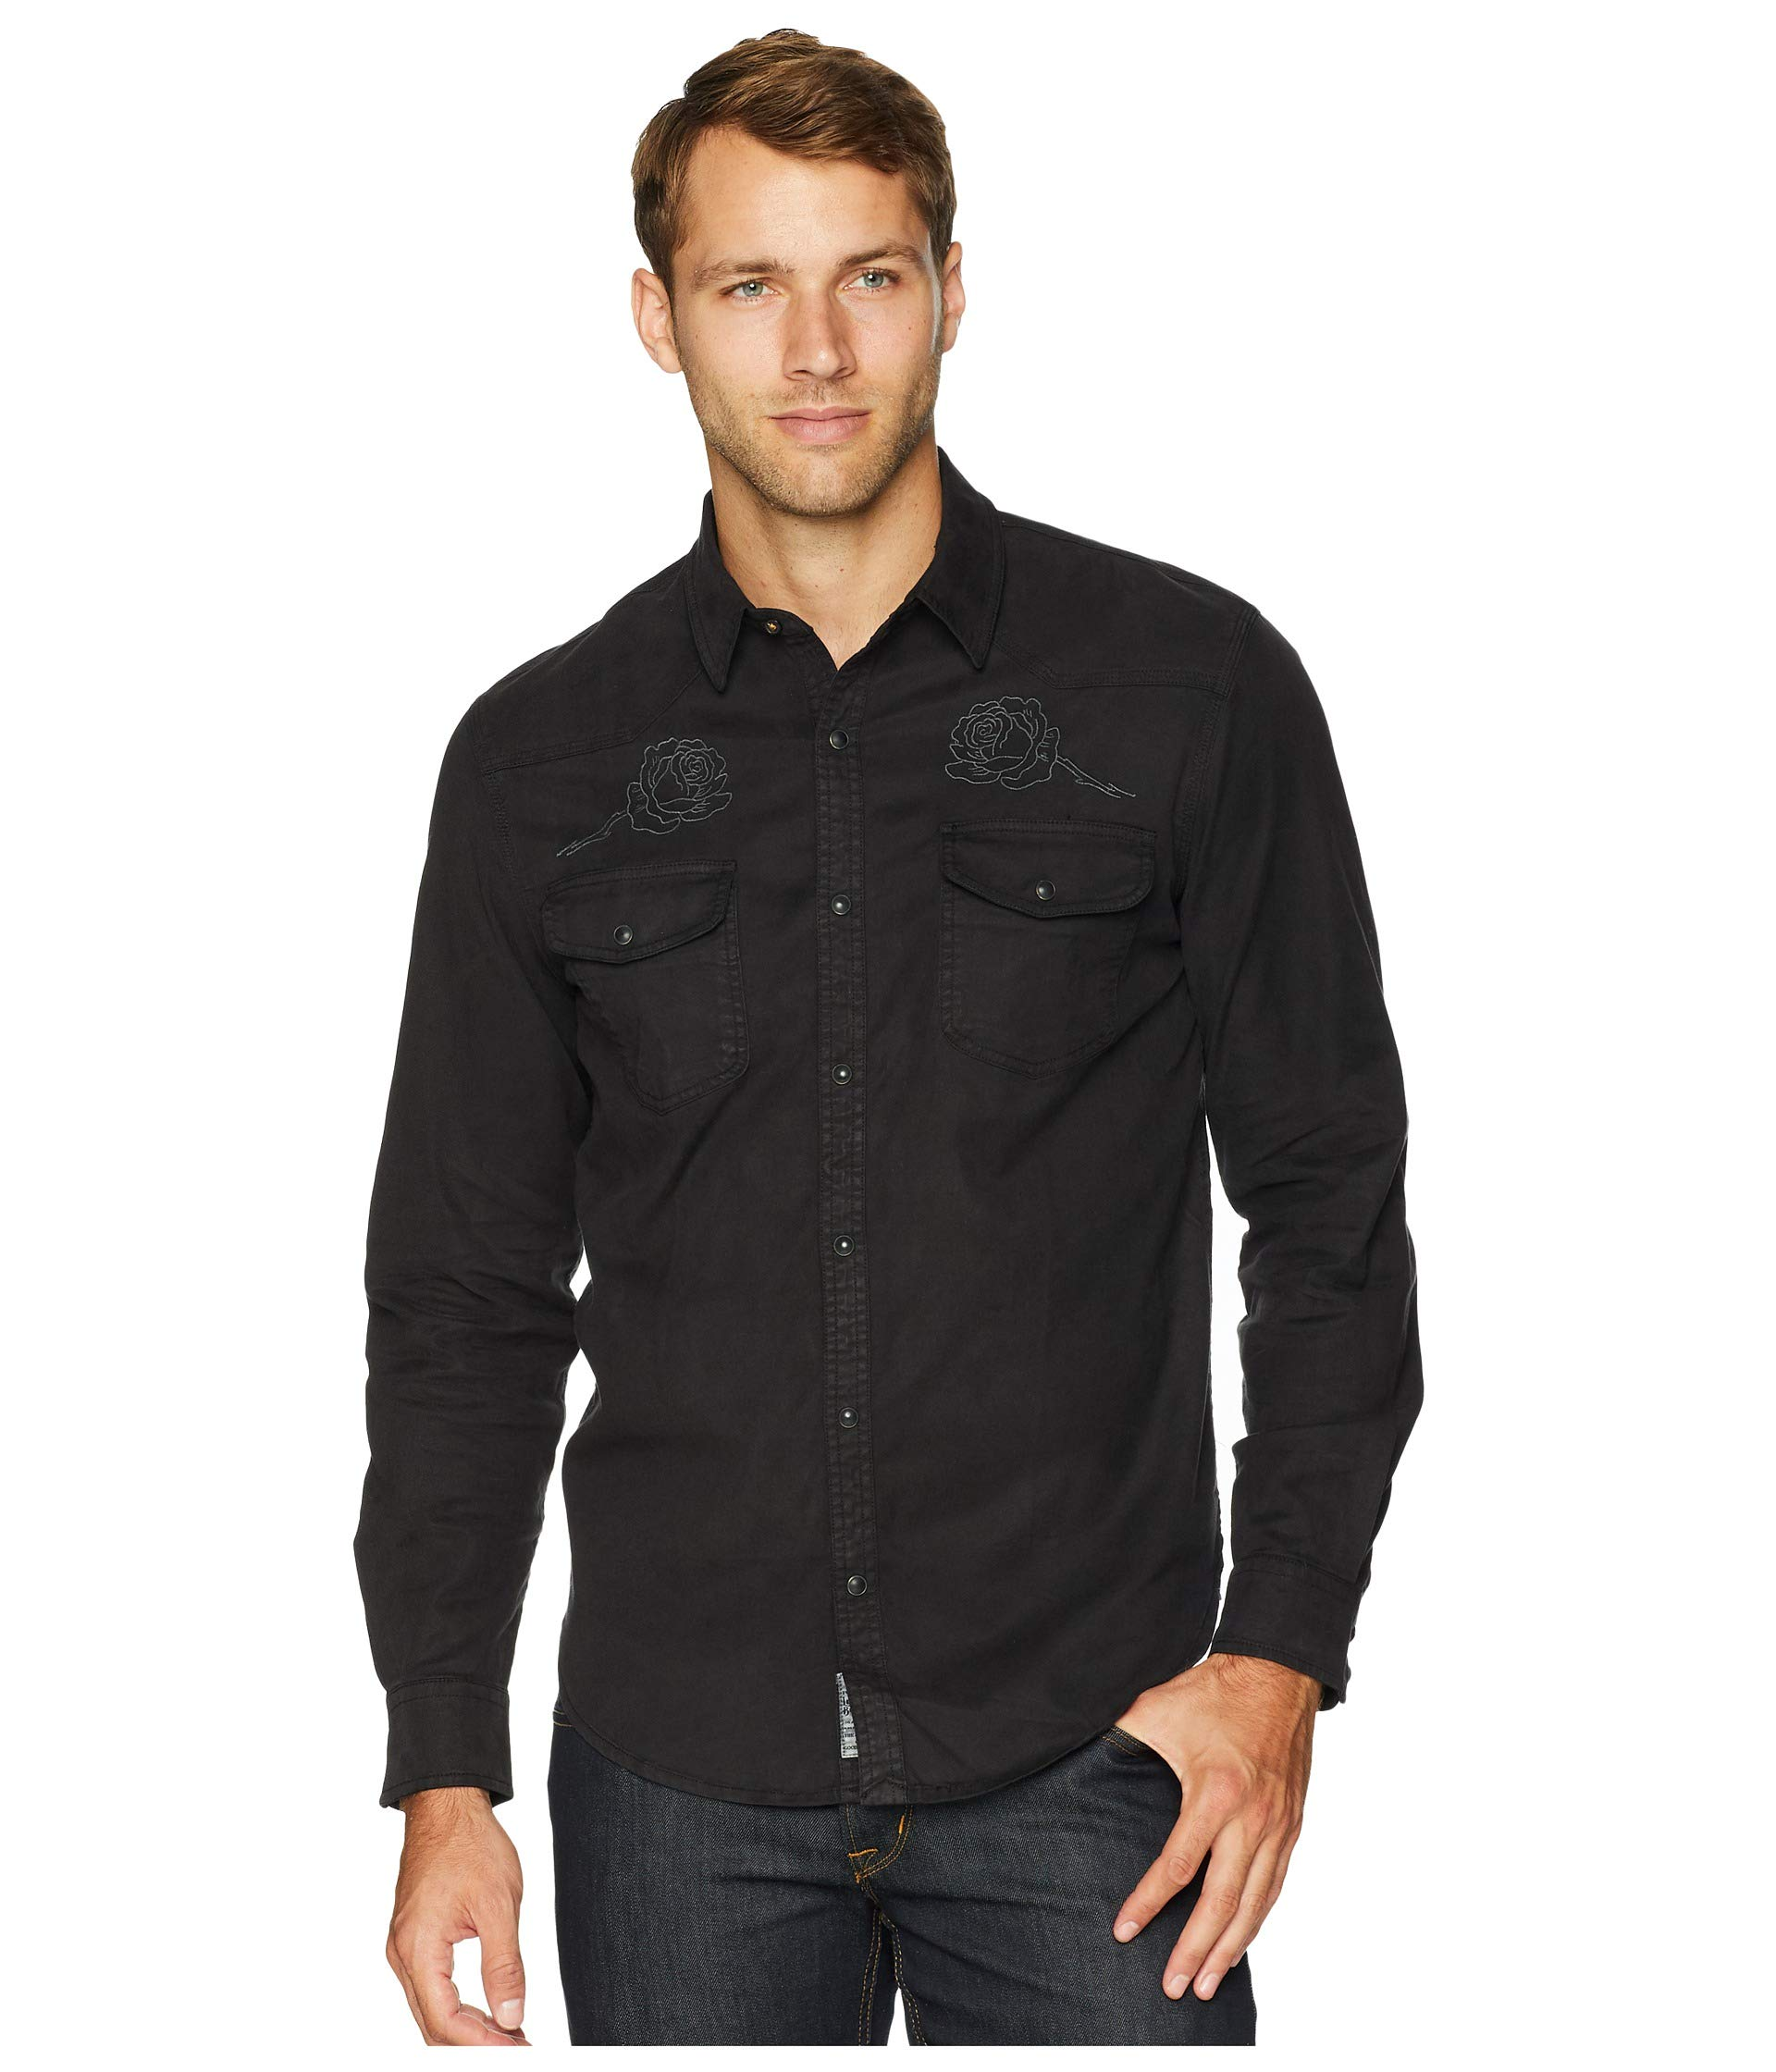 Lucky Brand Men's Casual Long Sleeve Embroidered Button Down Western Shirt, Black, M